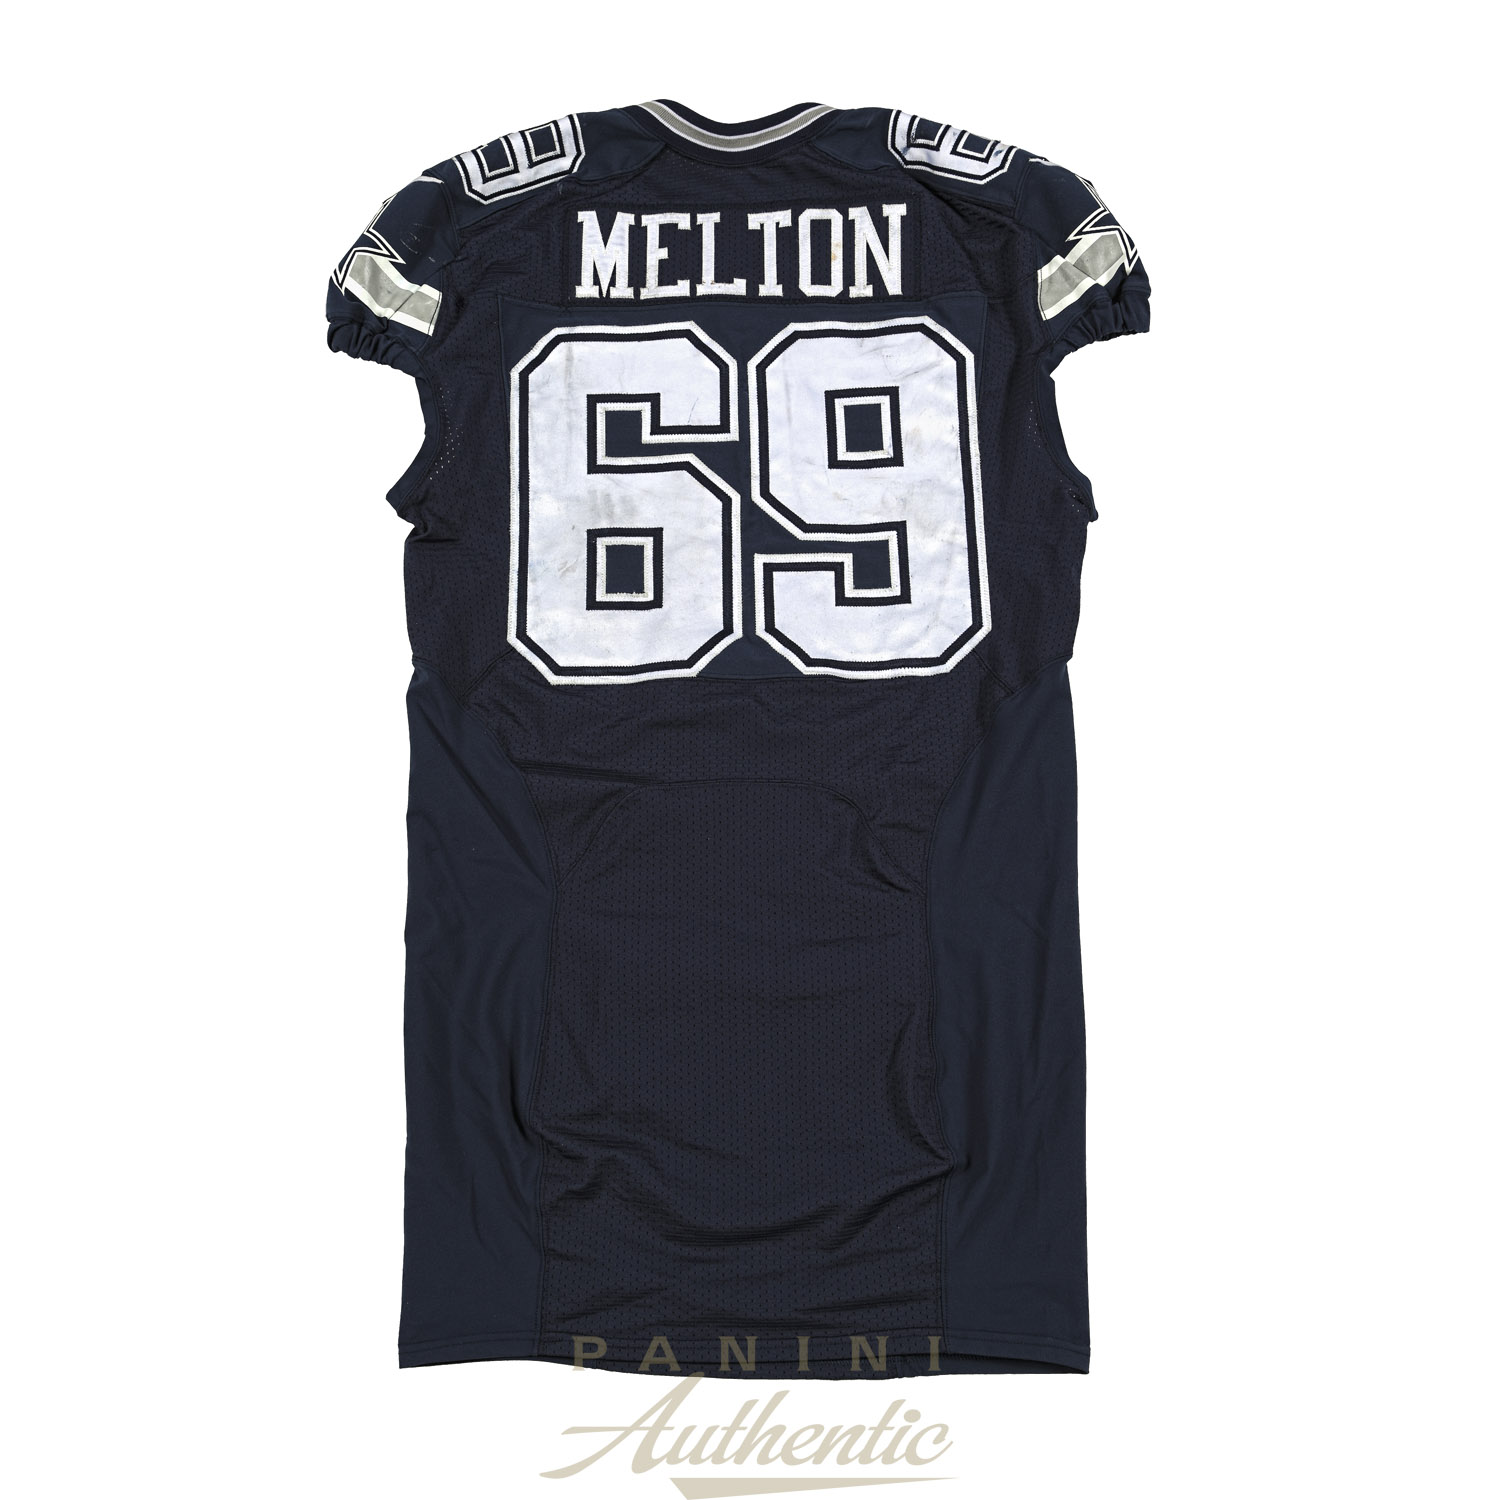 cheaper 985f6 99a09 Henry Melton Game Worn Dallas Cowboys Jersey From 9/21/2014 ...